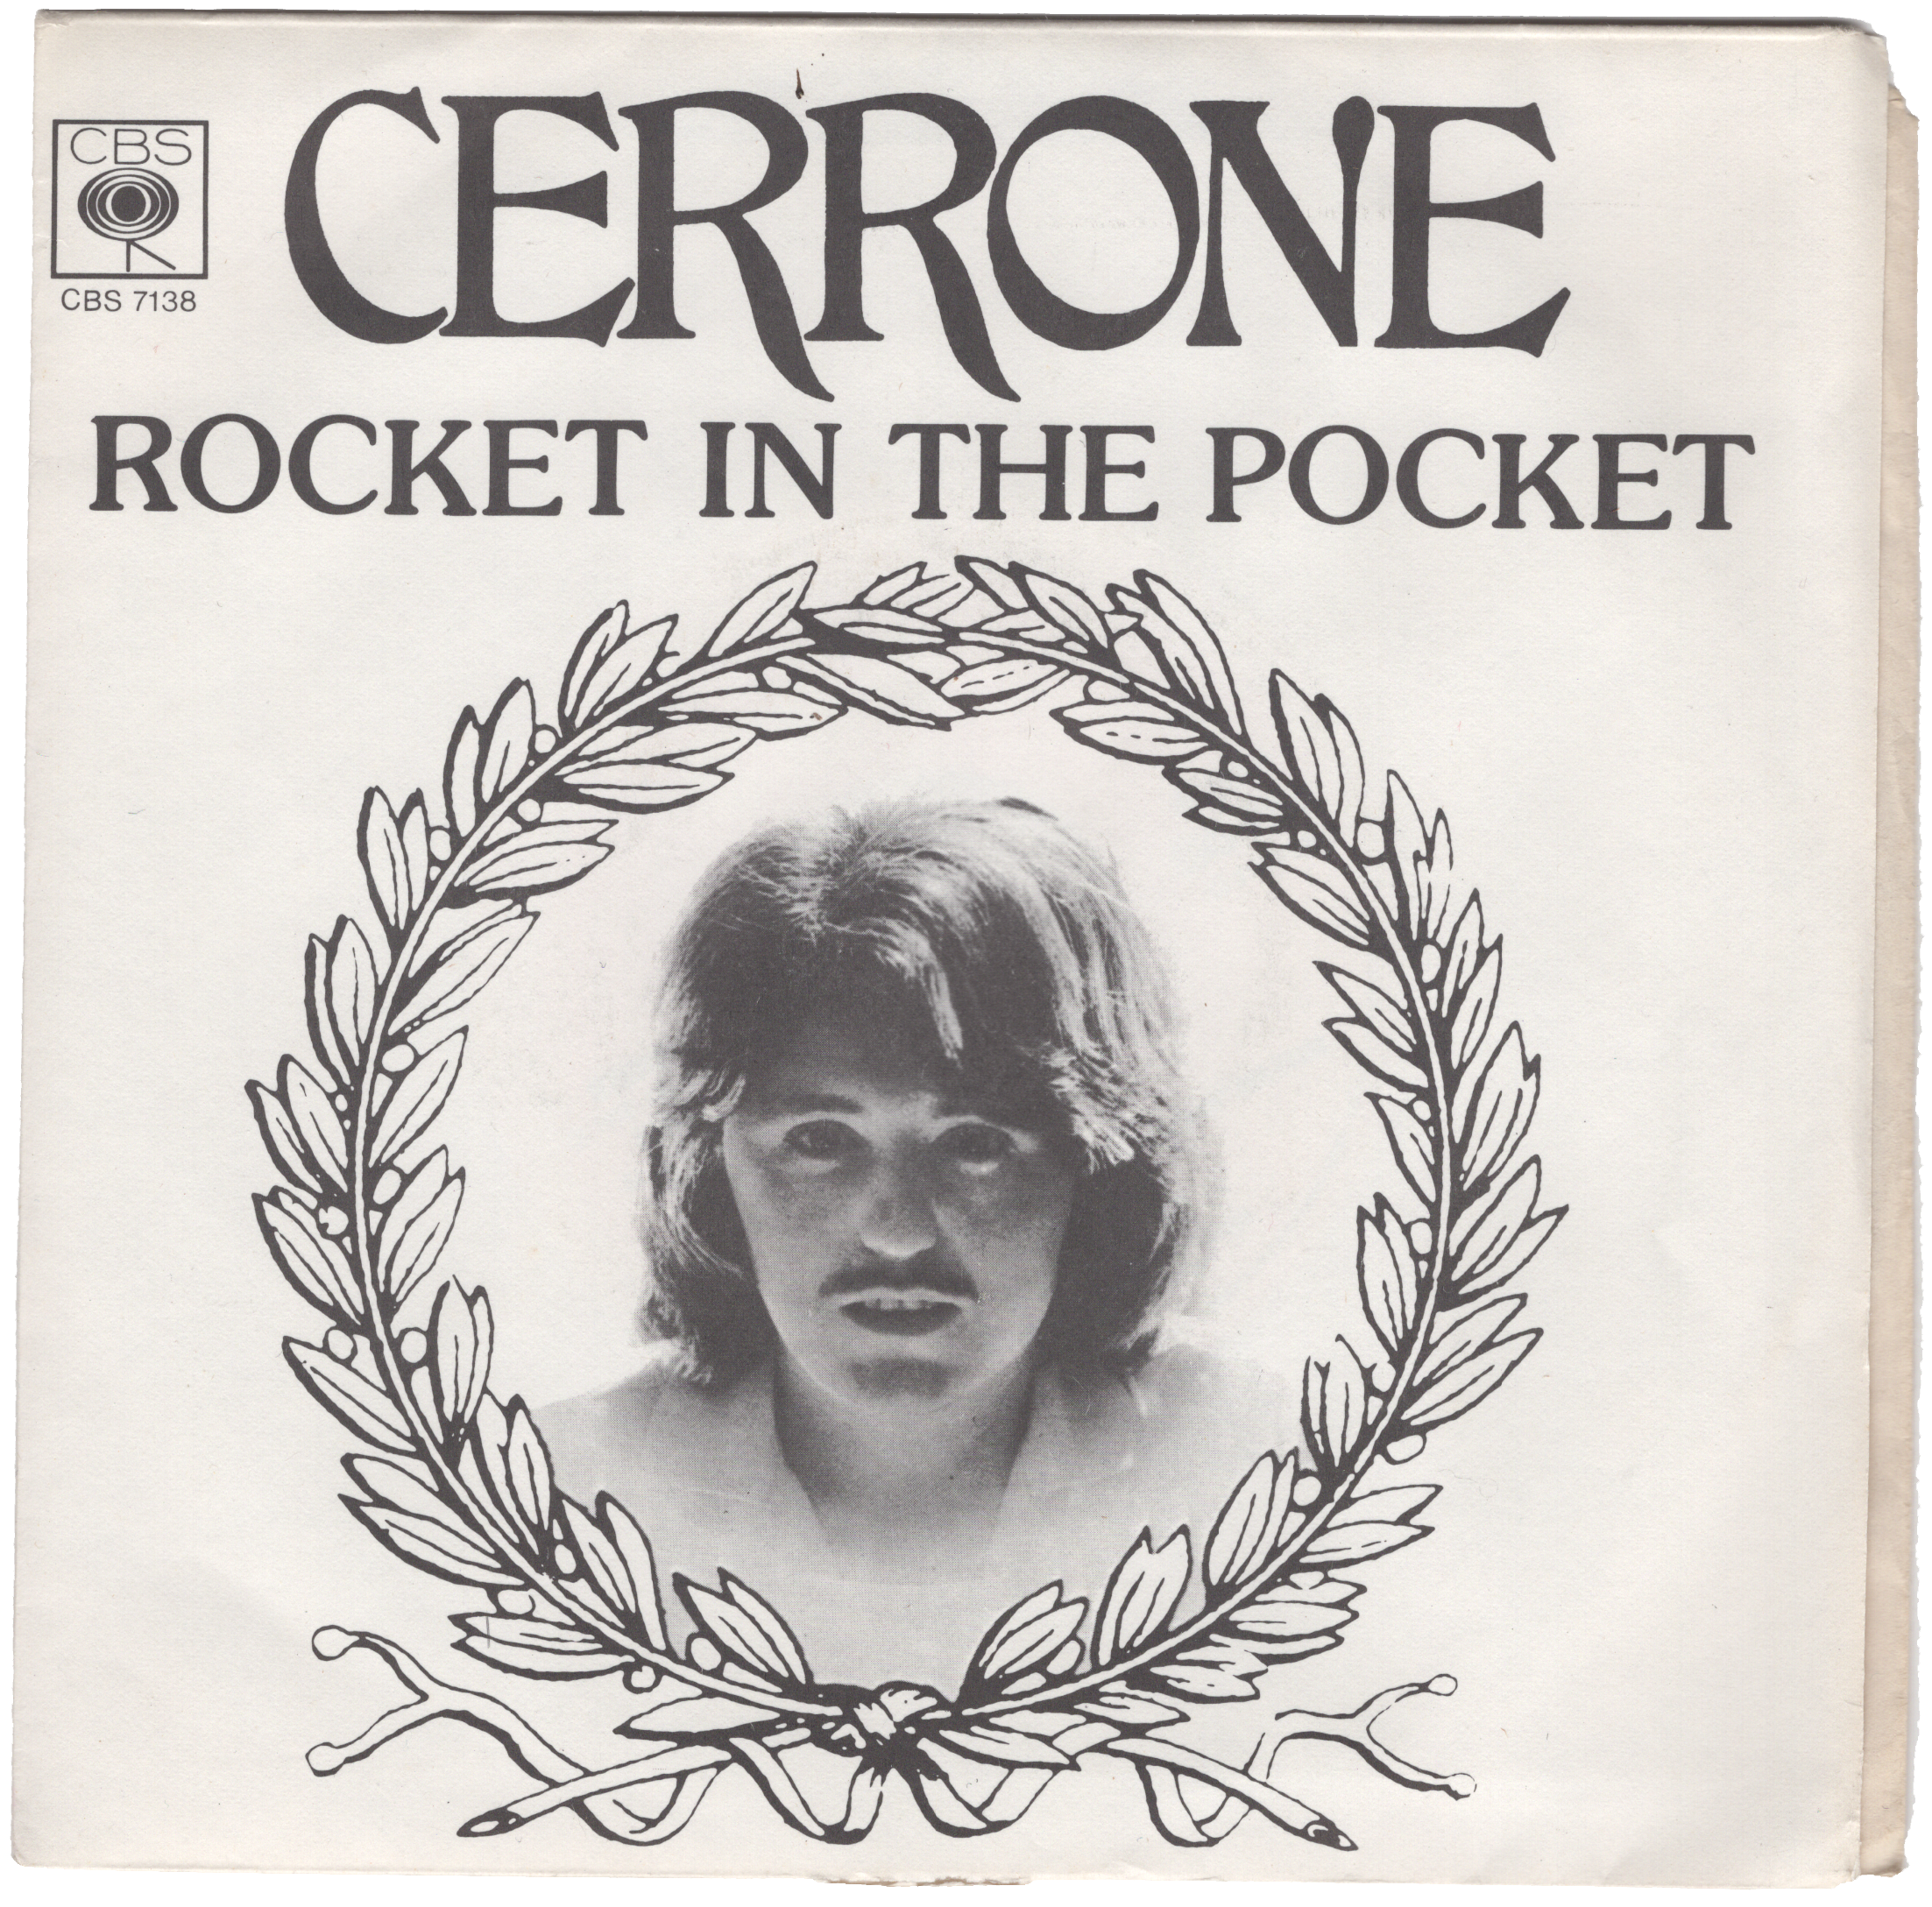 WLWLTDOO-1978-45-CERRONE-ROCKET_IN_THE_POCKET-FRONT-CBS7138.png